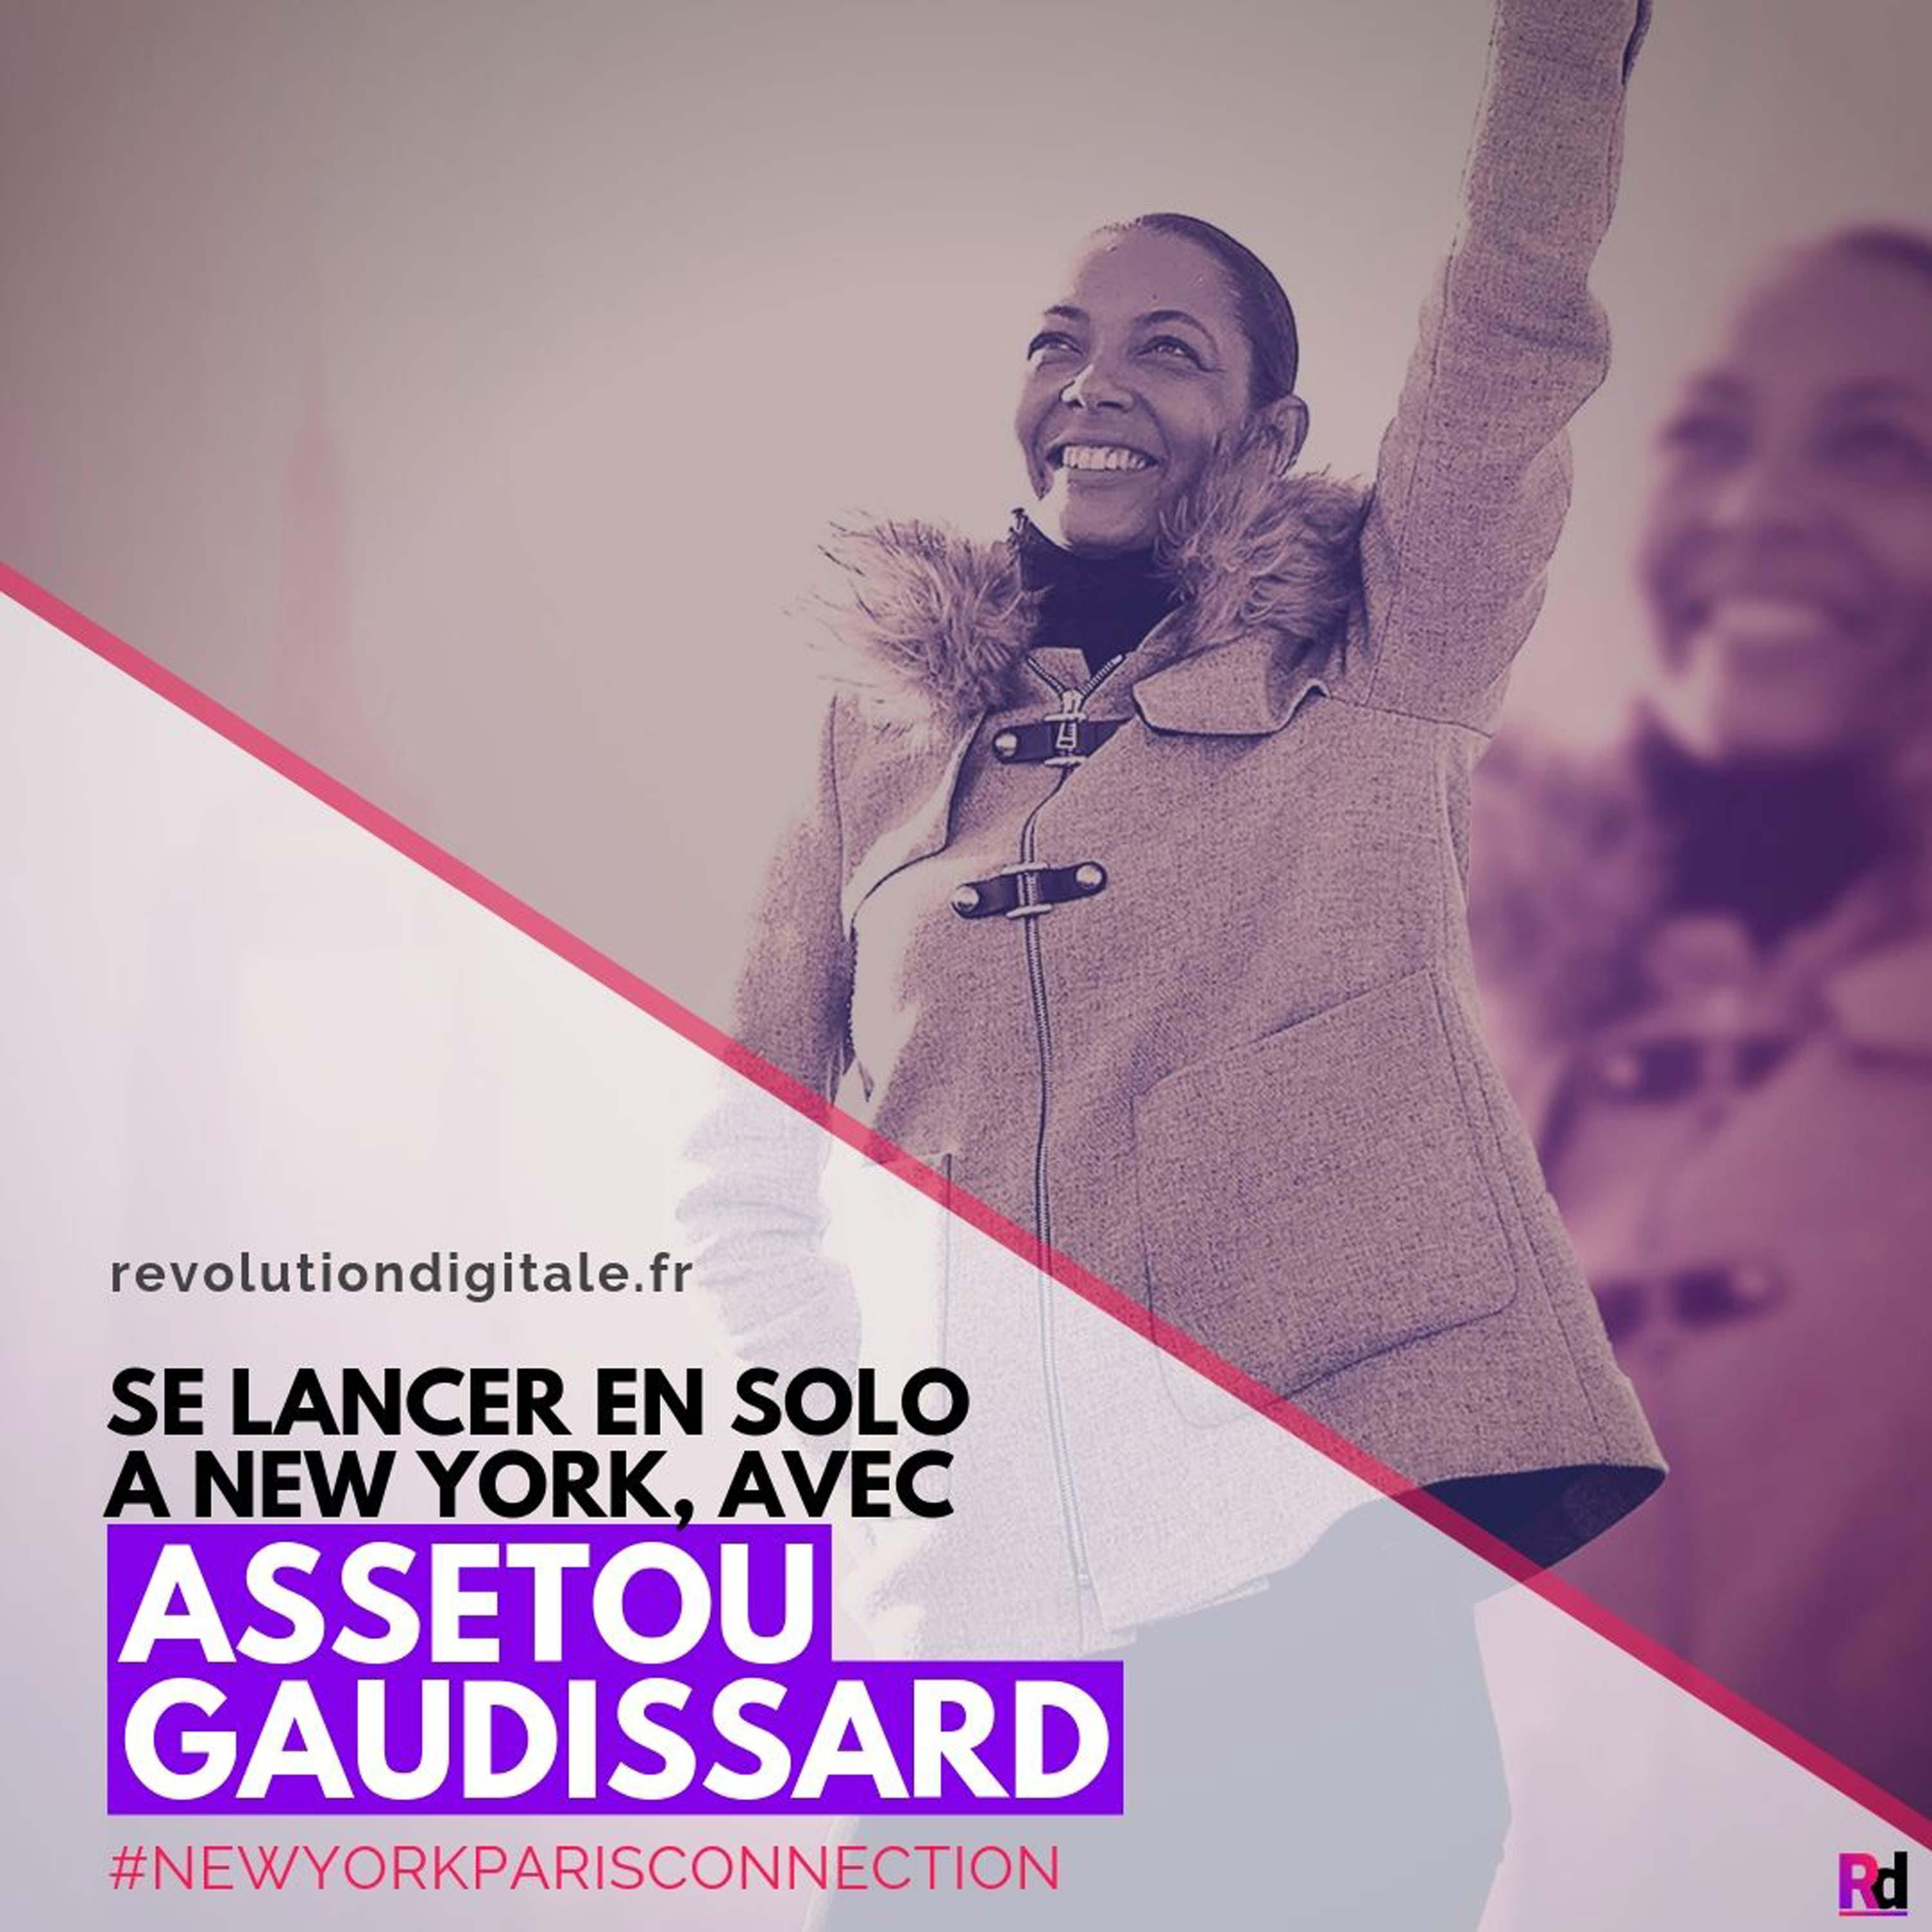 Se lancer en solo à New York, avec Assetou Gaudissard (New York Paris Connection)